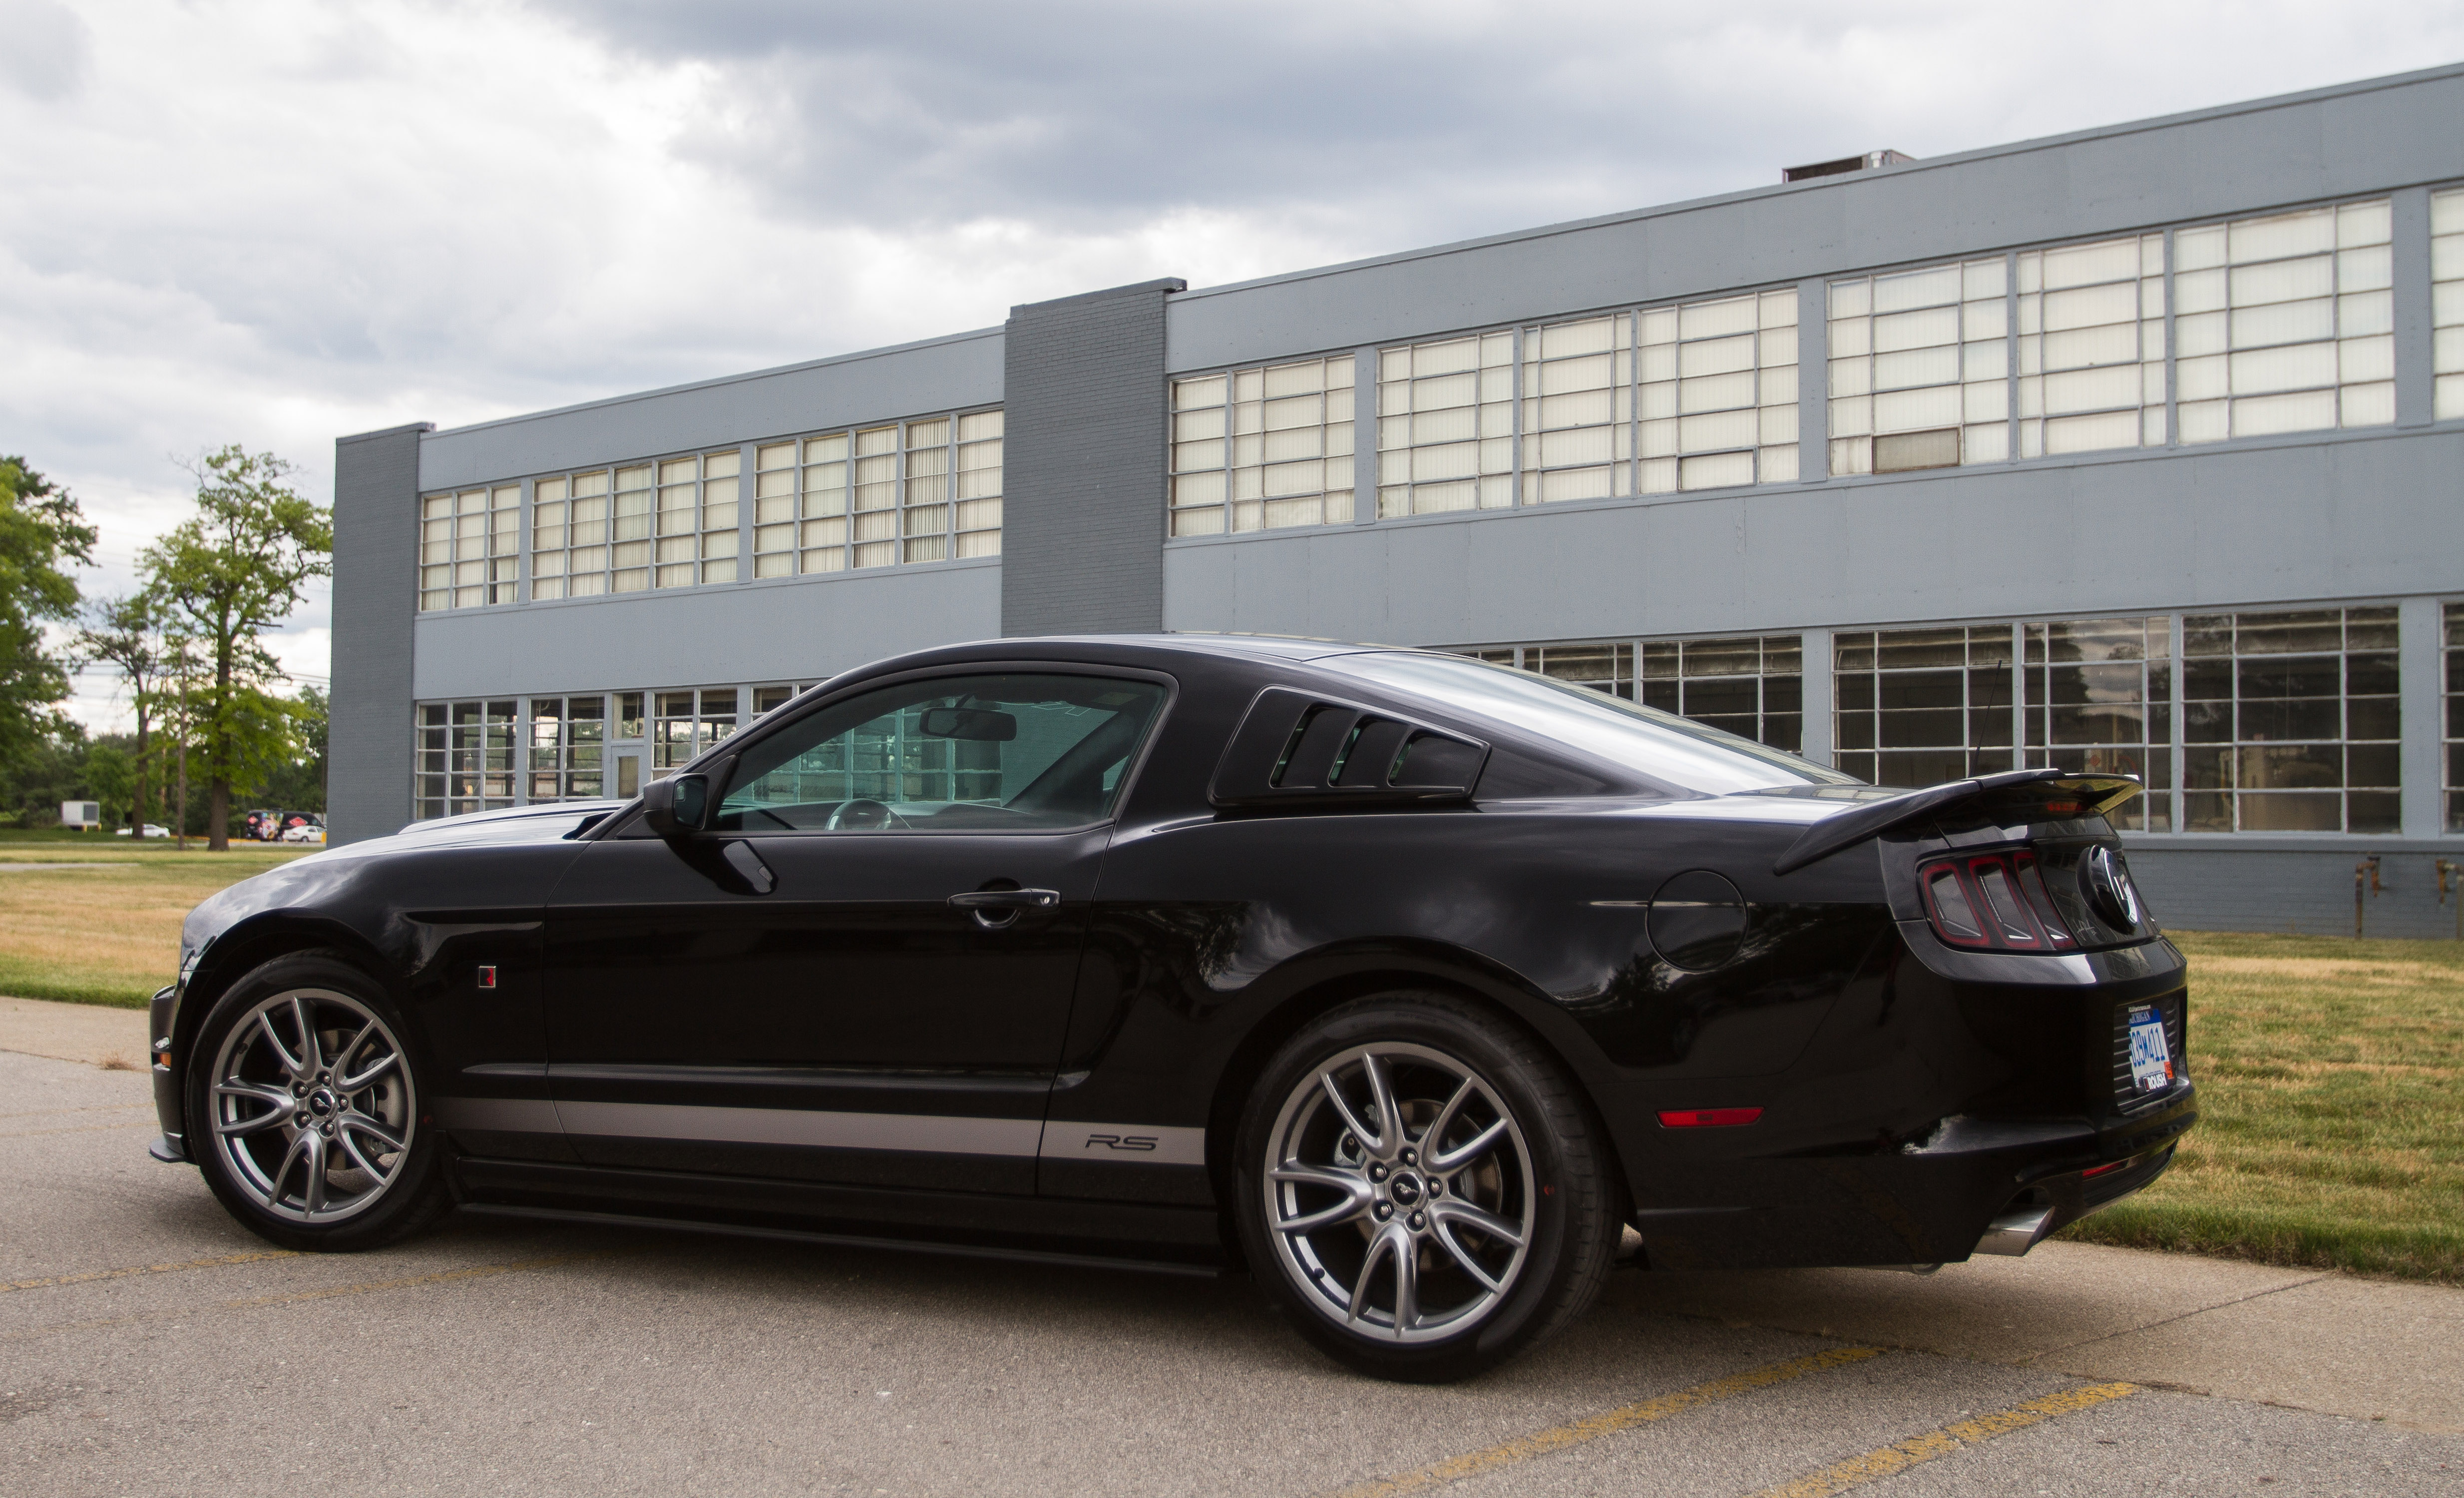 Ford Muscle Cars >> 2013 ROUSH Ford Mustang R-S muscle tuning d wallpaper | 4934x3000 | 83780 | WallpaperUP